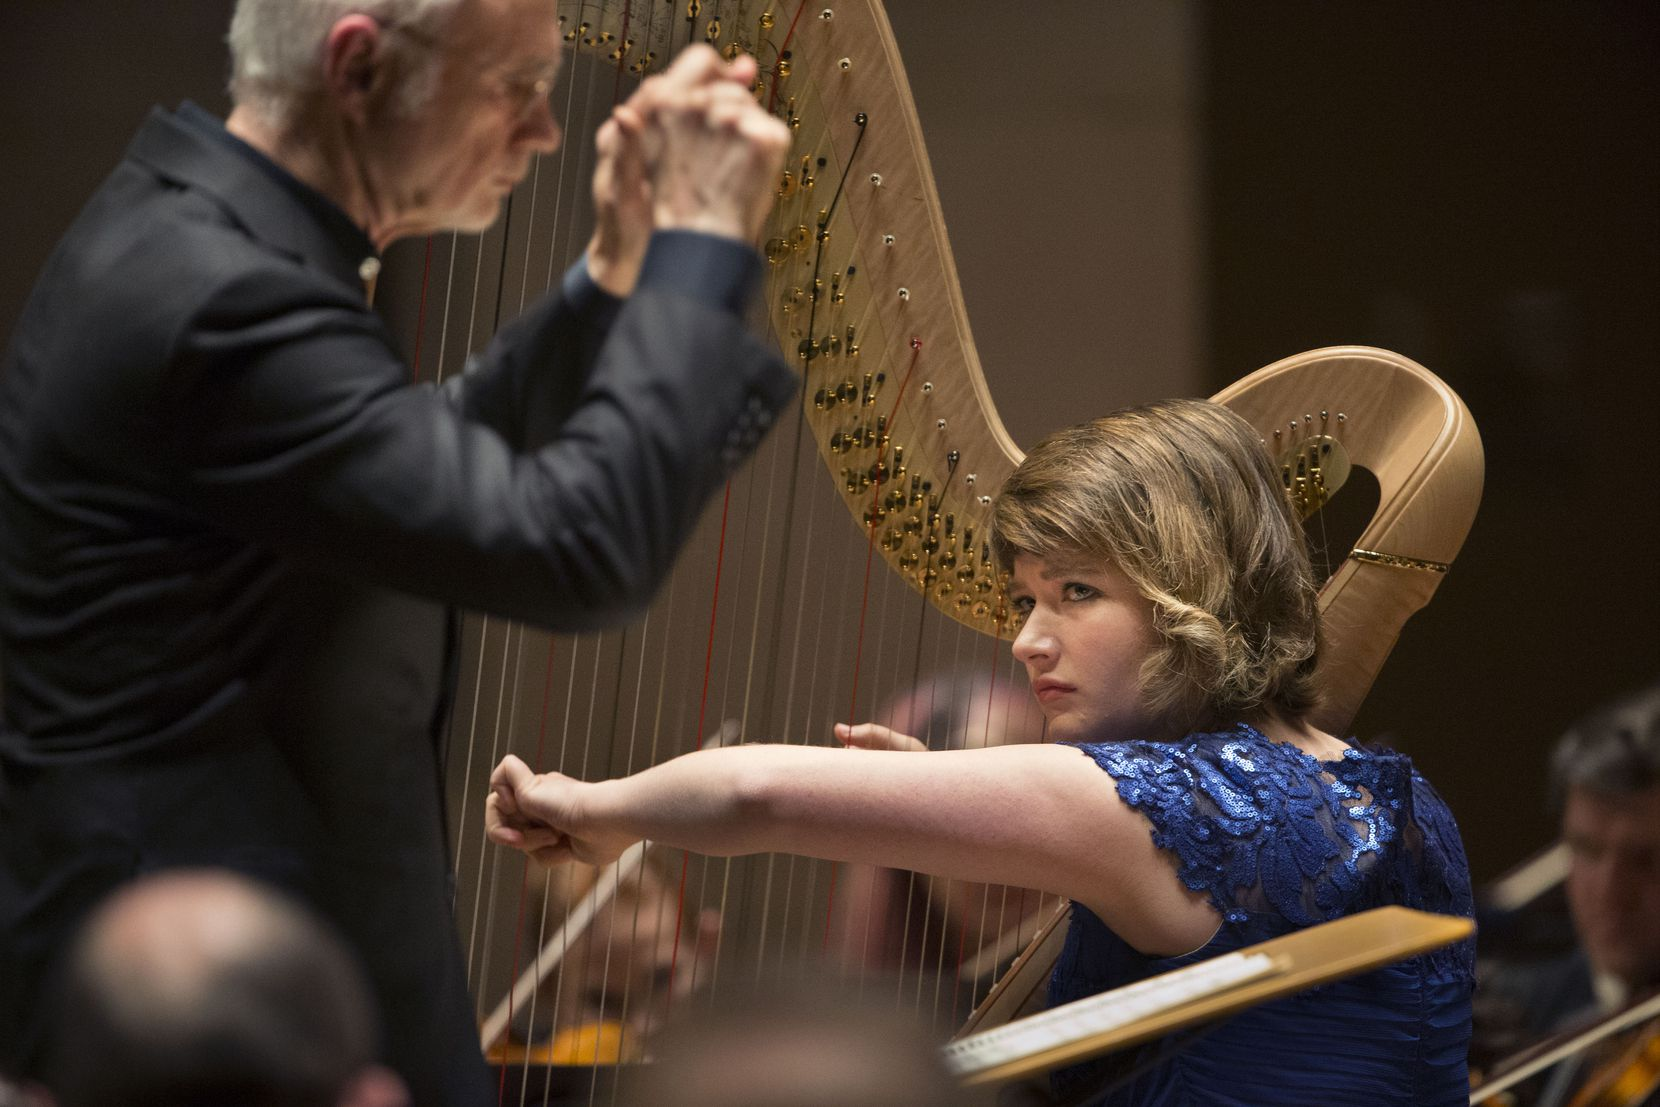 On Monday, Emily Levin, the principal harpist of the Dallas Symphony Orchestra, performed a live, full-length recital from her living room.